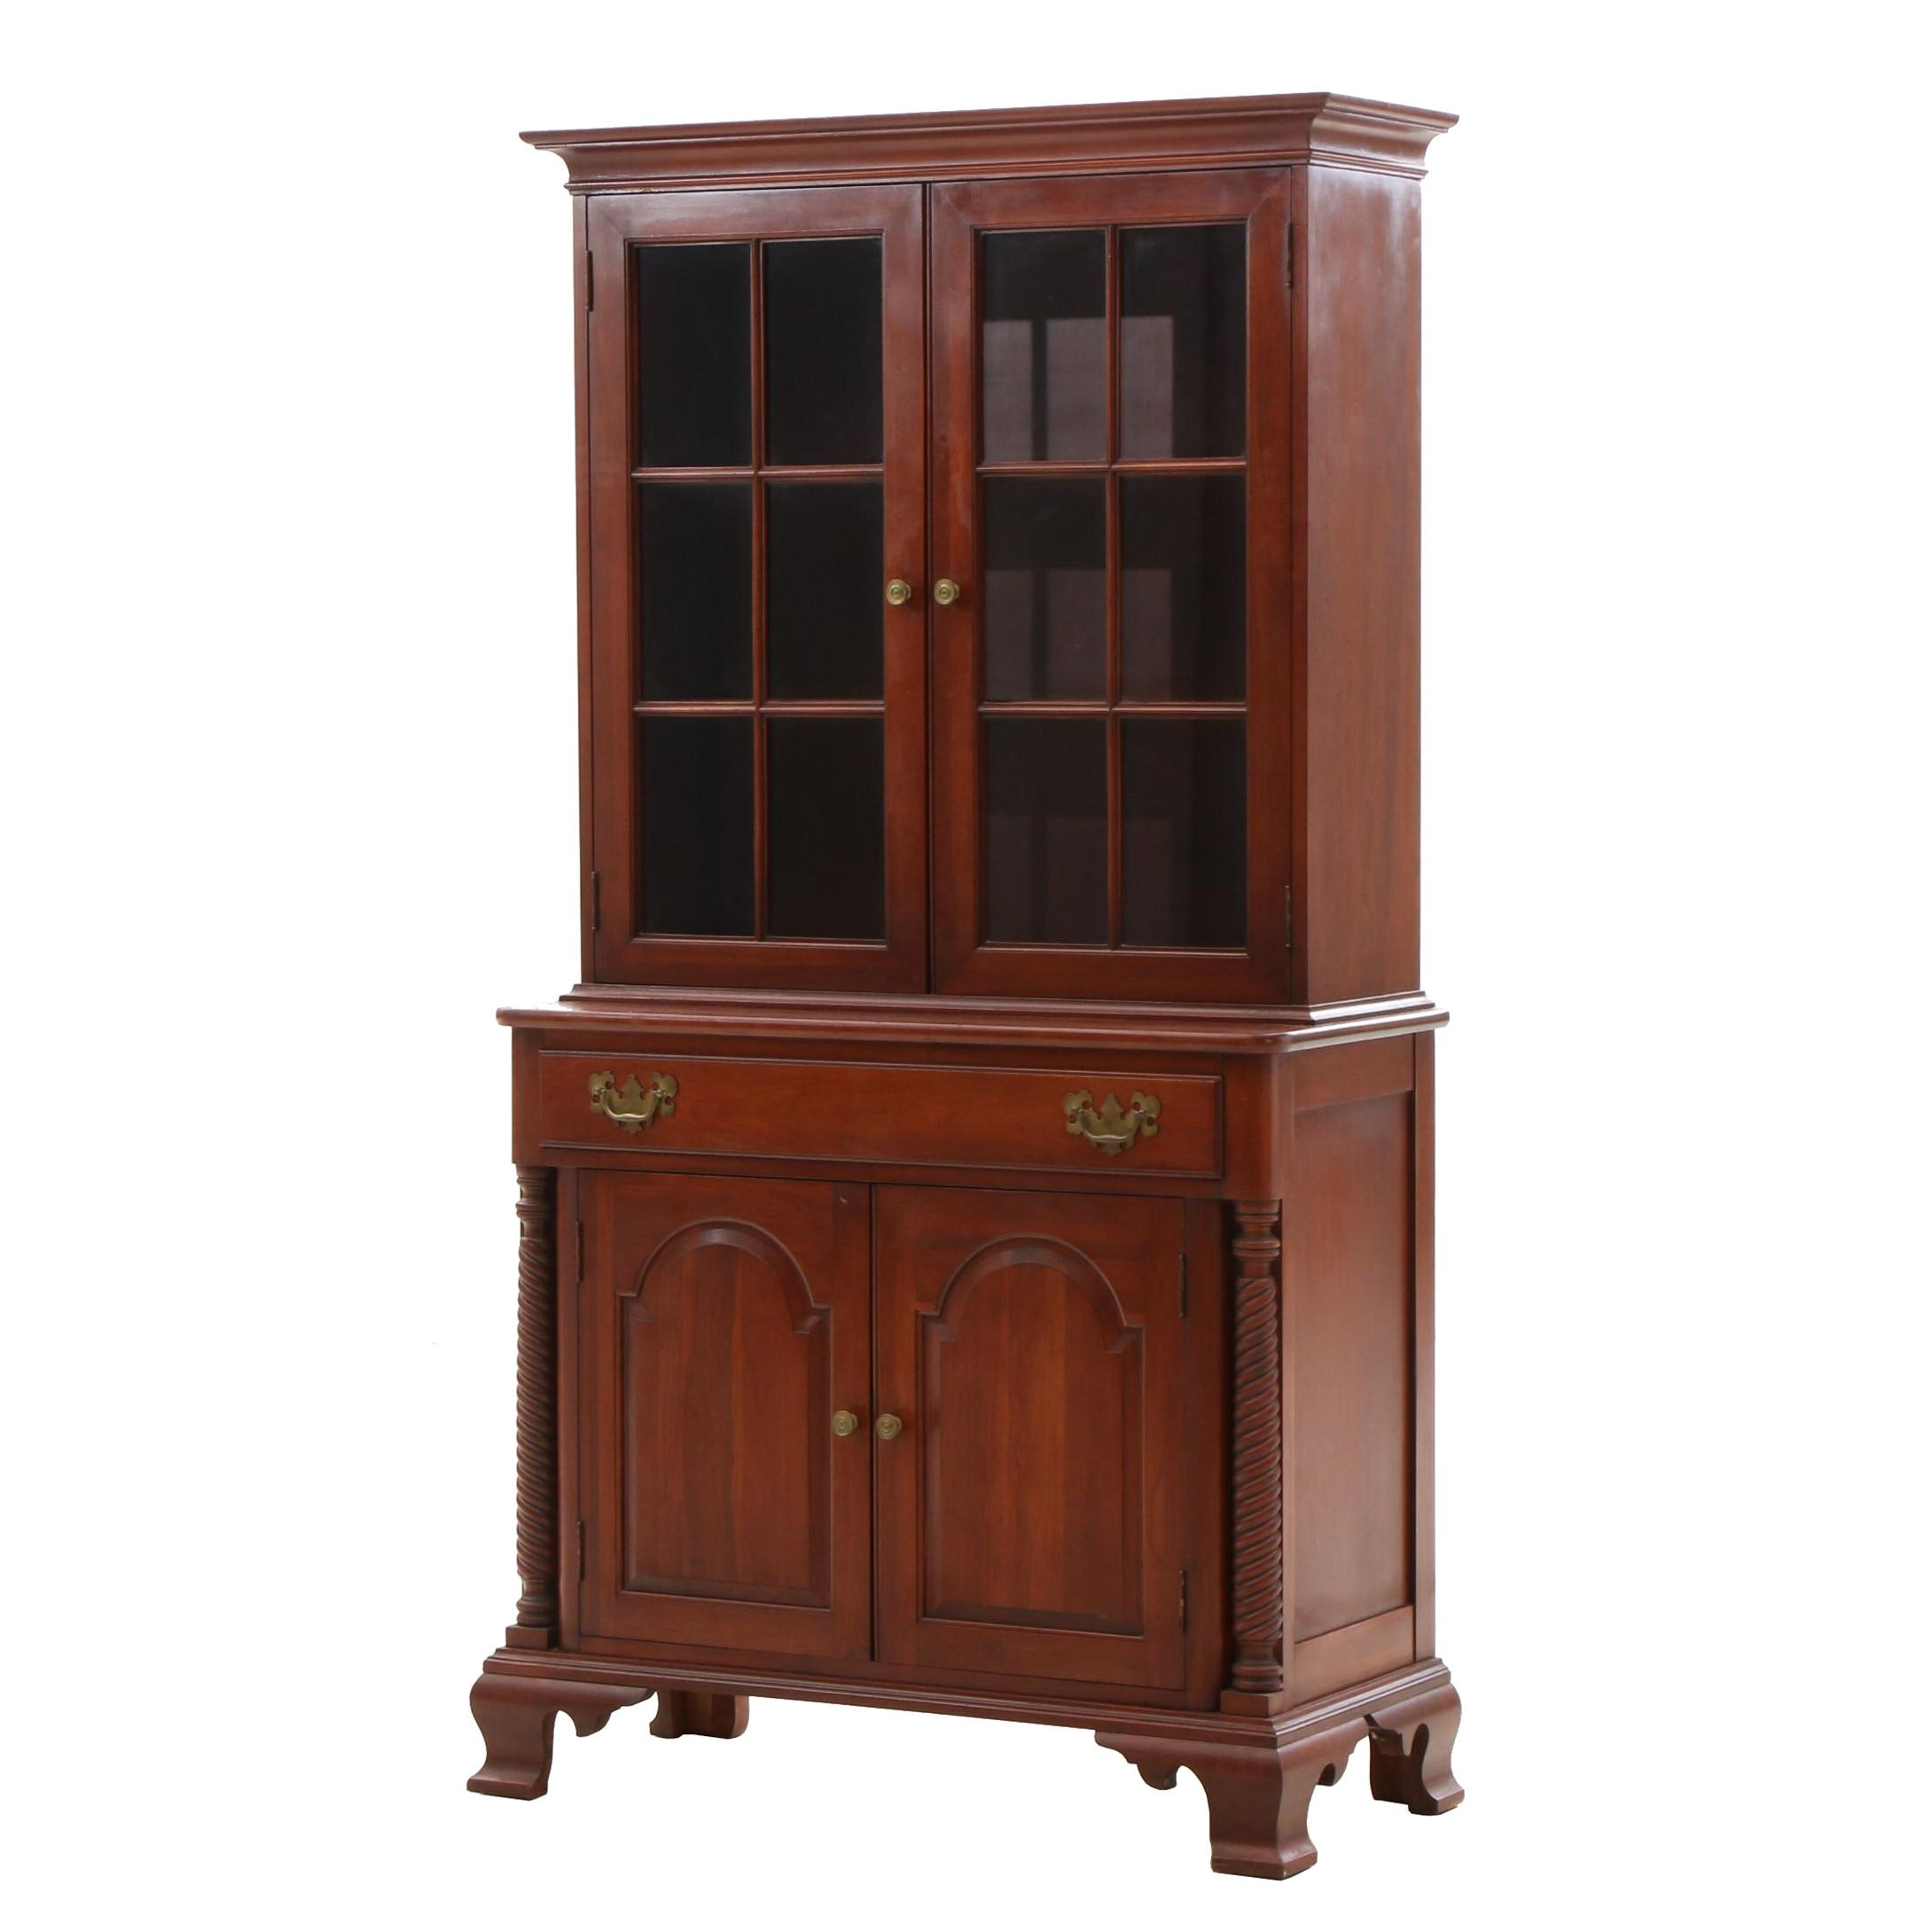 Willett Wildwood Cherry China Cabinet